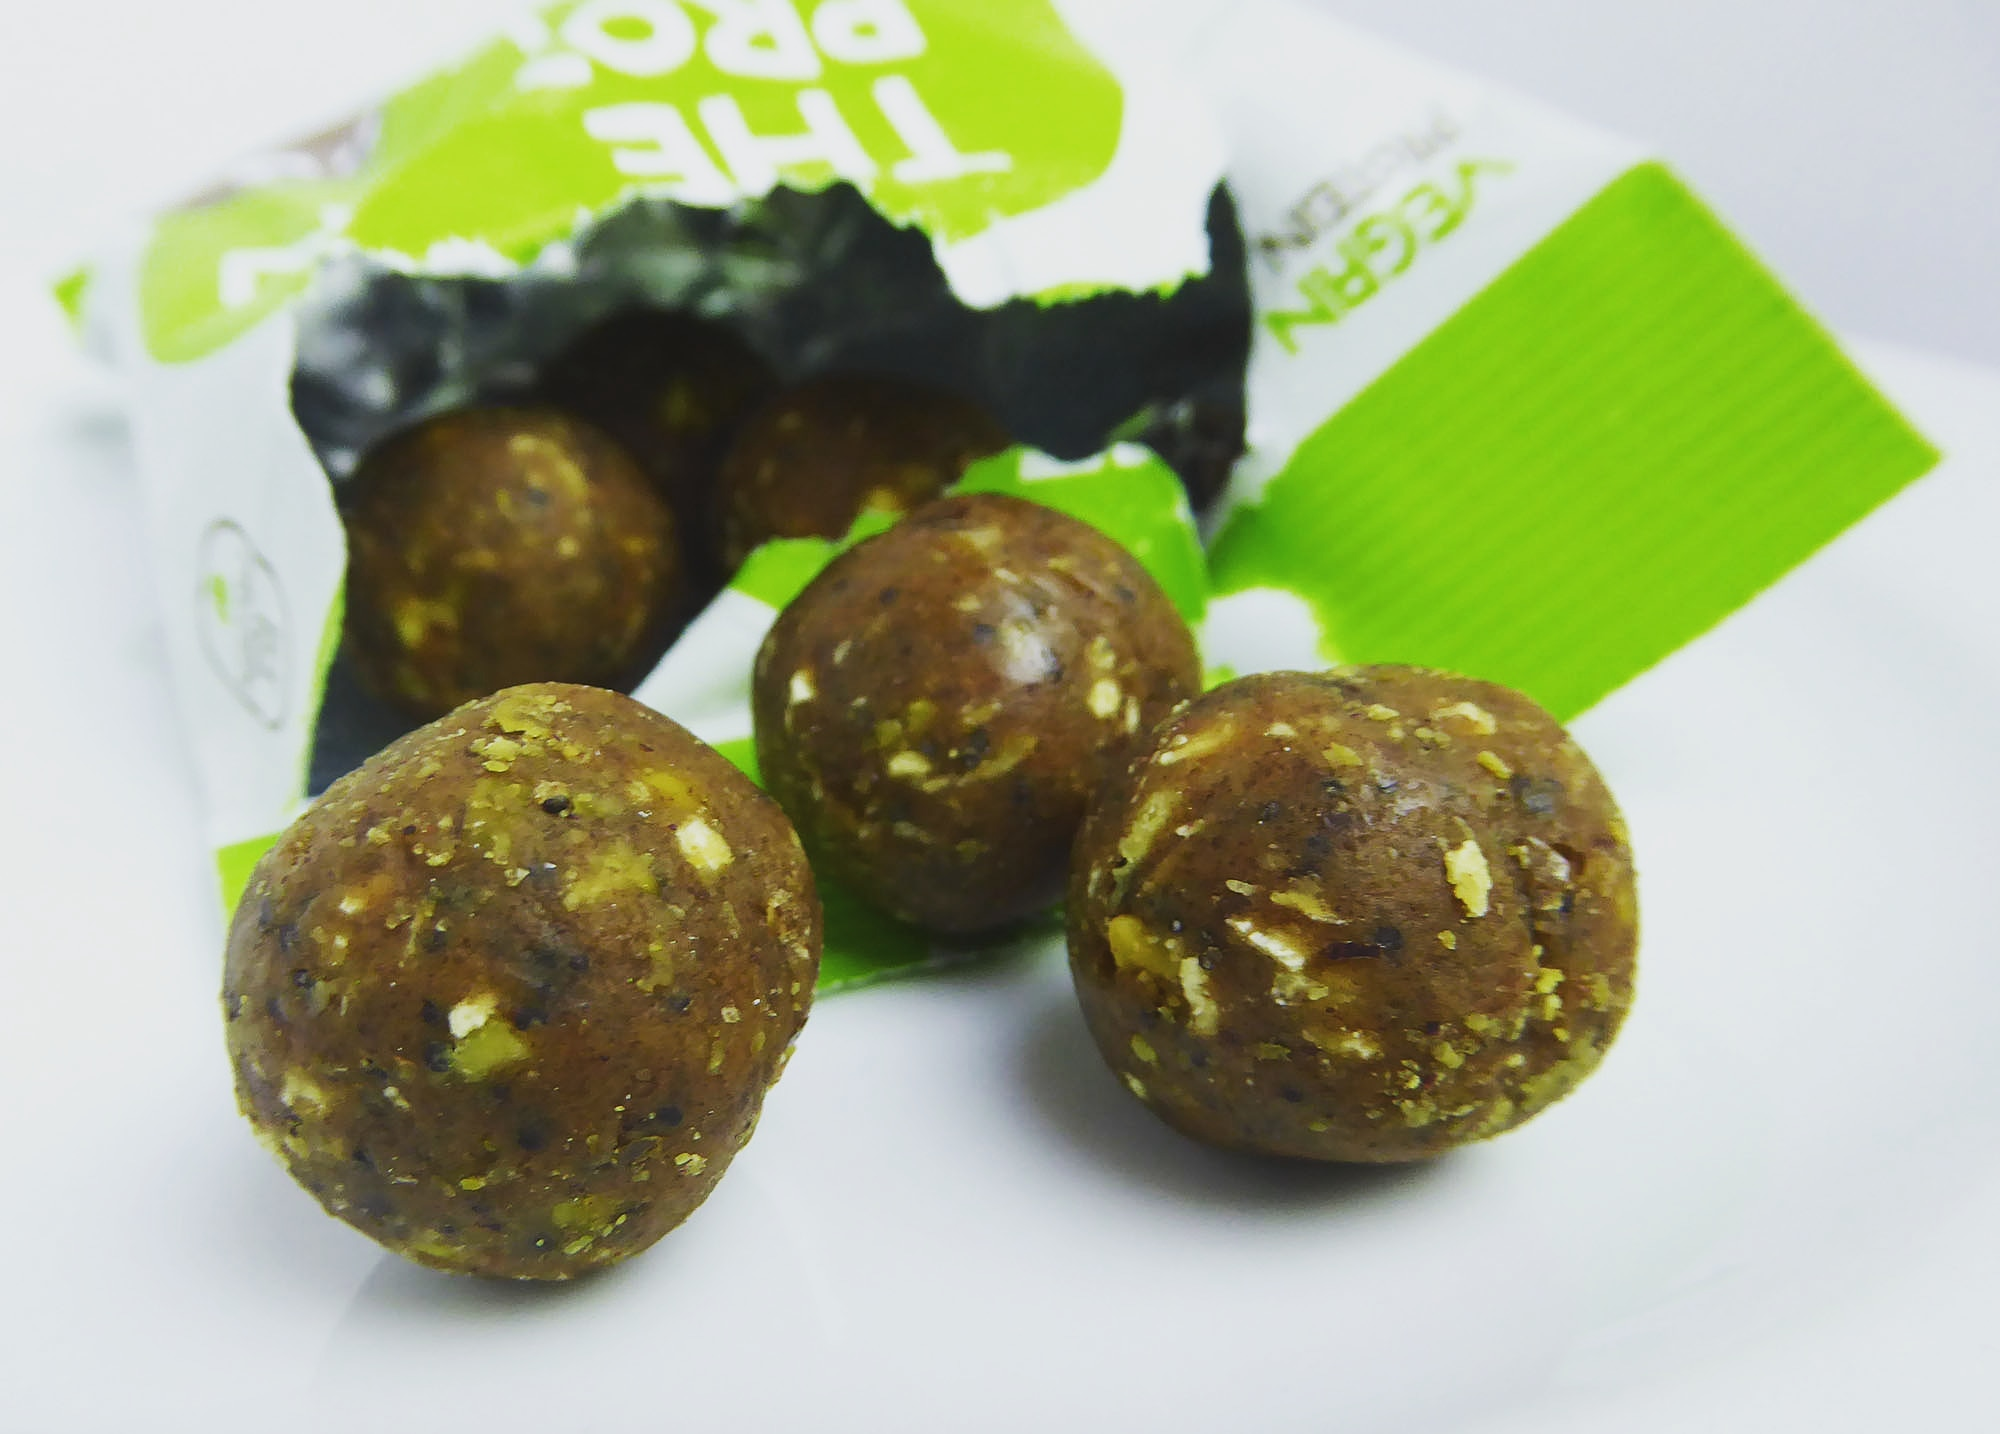 The Protein Ball Co Lemon Pistachio Protein Bar Proteinbar Proteinriegel Eiweißriegel